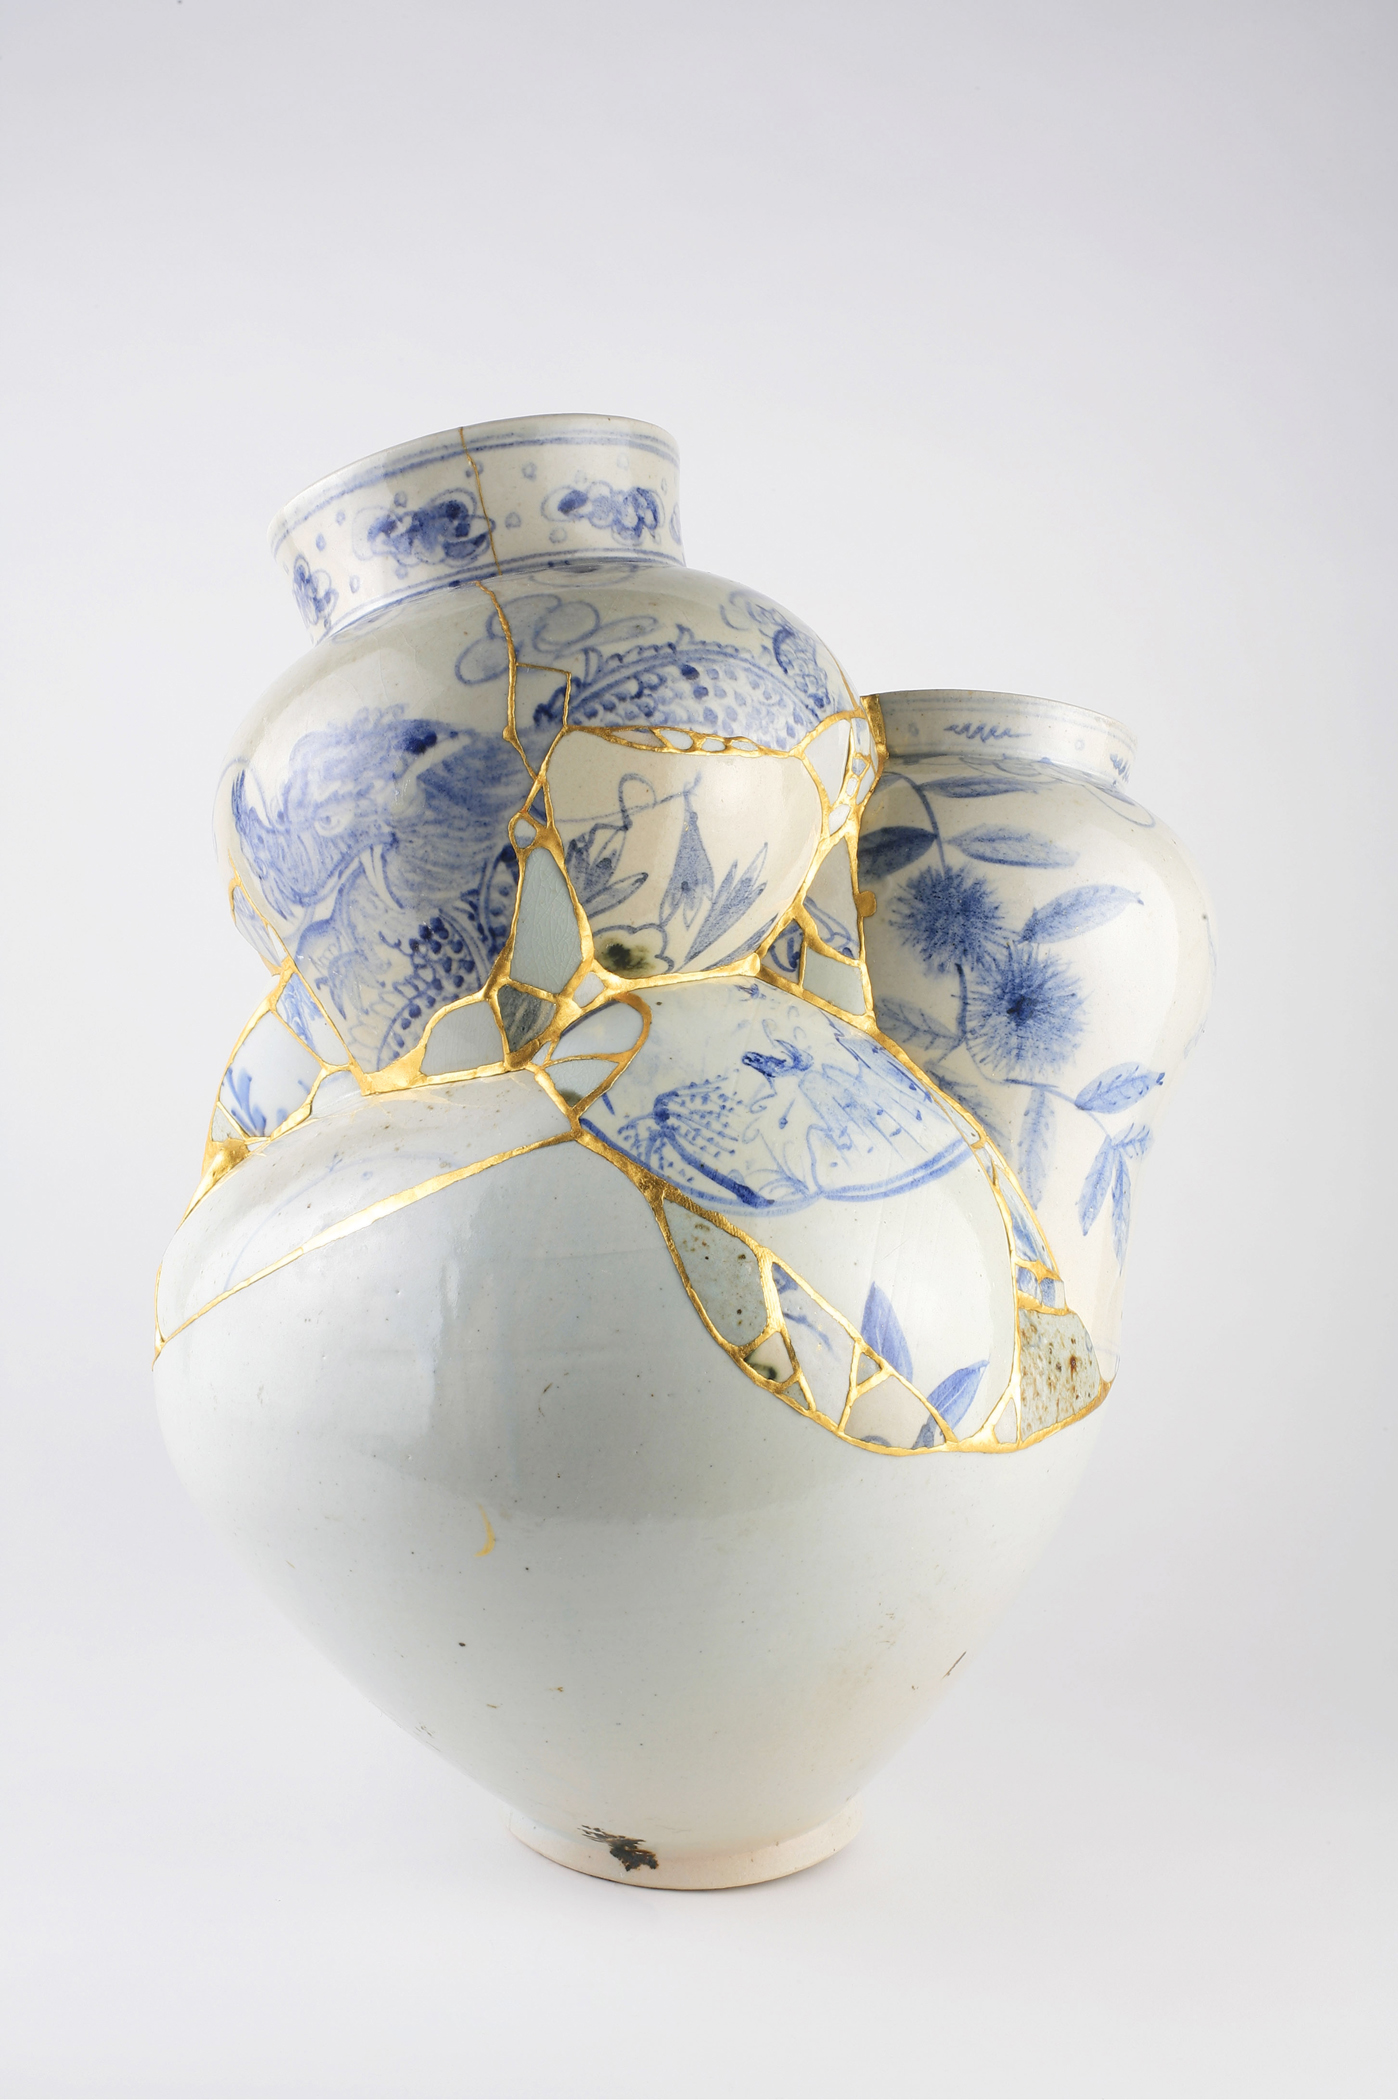 The photo is of a piece from the Translated Vases series by the Korean artist Yeesookyung, which is displayed at The University of Chicago's Smart Museum of Art